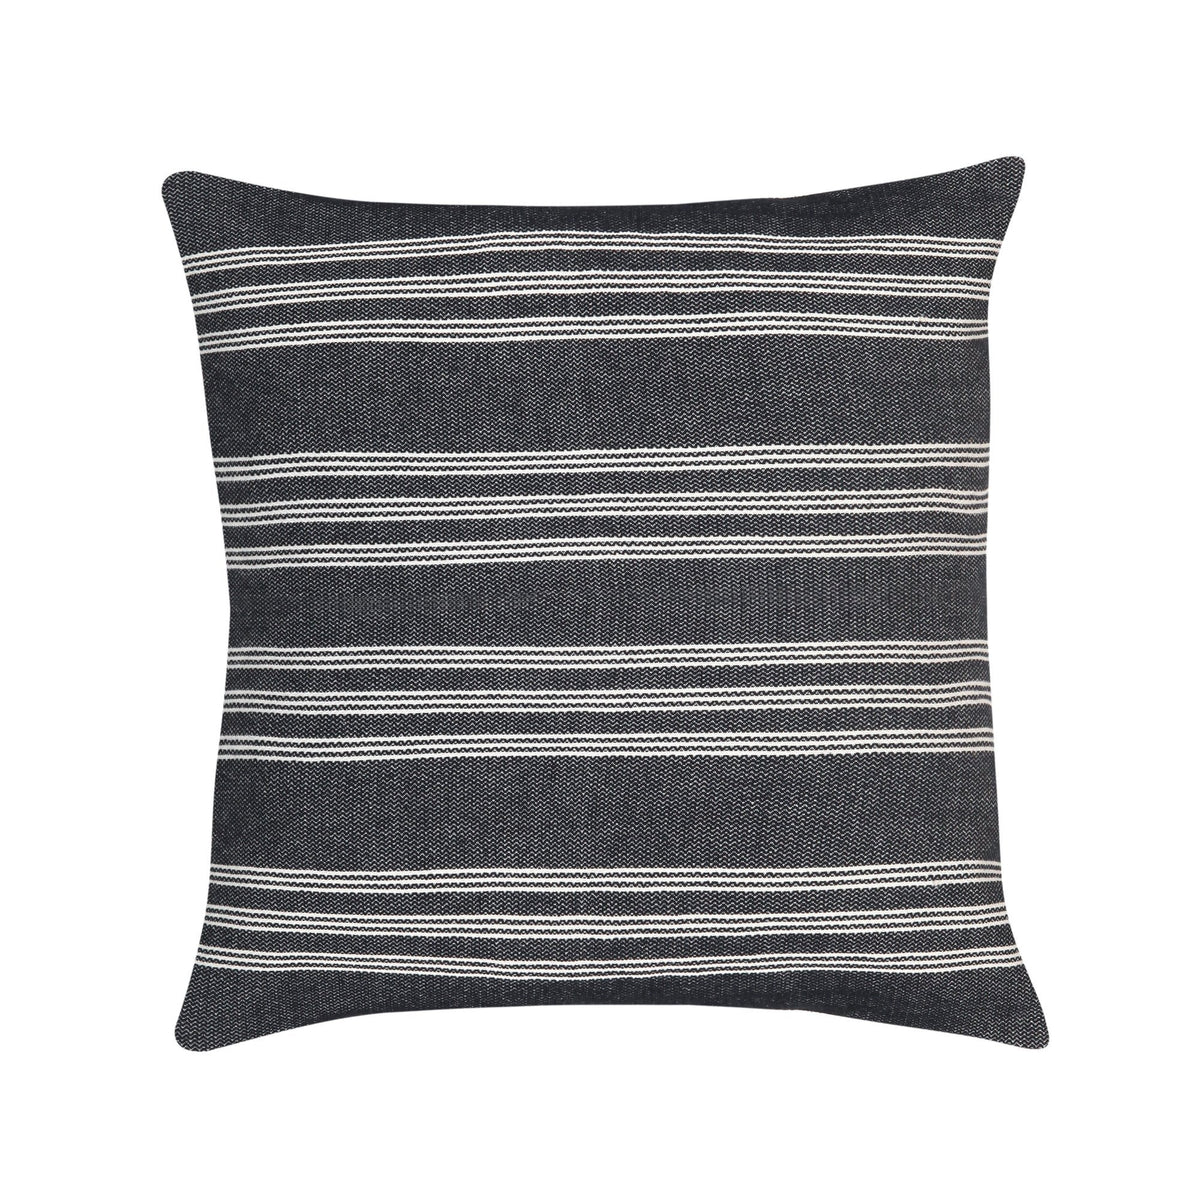 Allora Throw Pillow Cover SQ